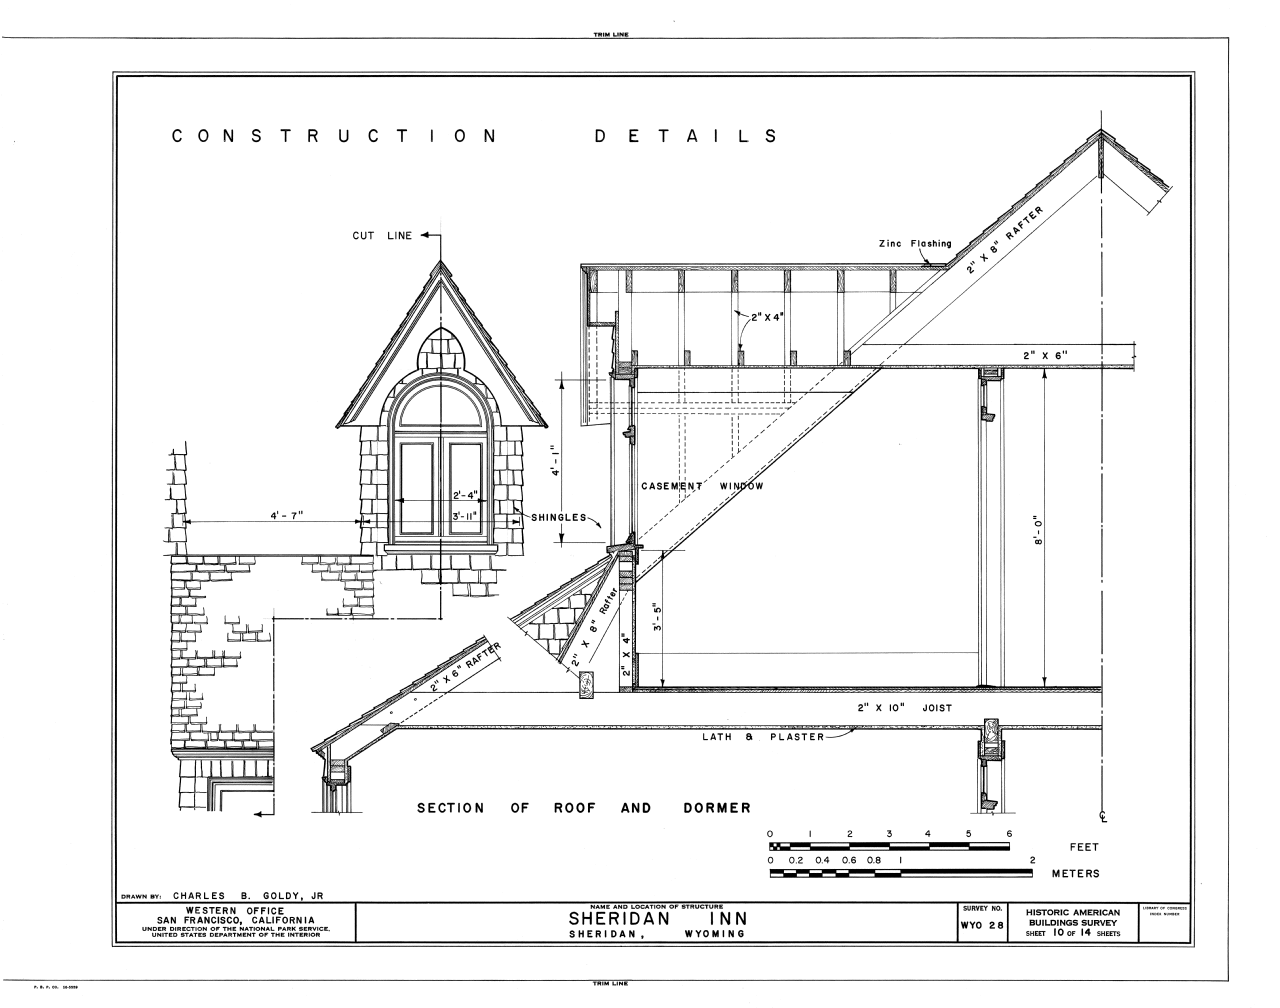 File Construction Detail Section Of Roof And Dormer